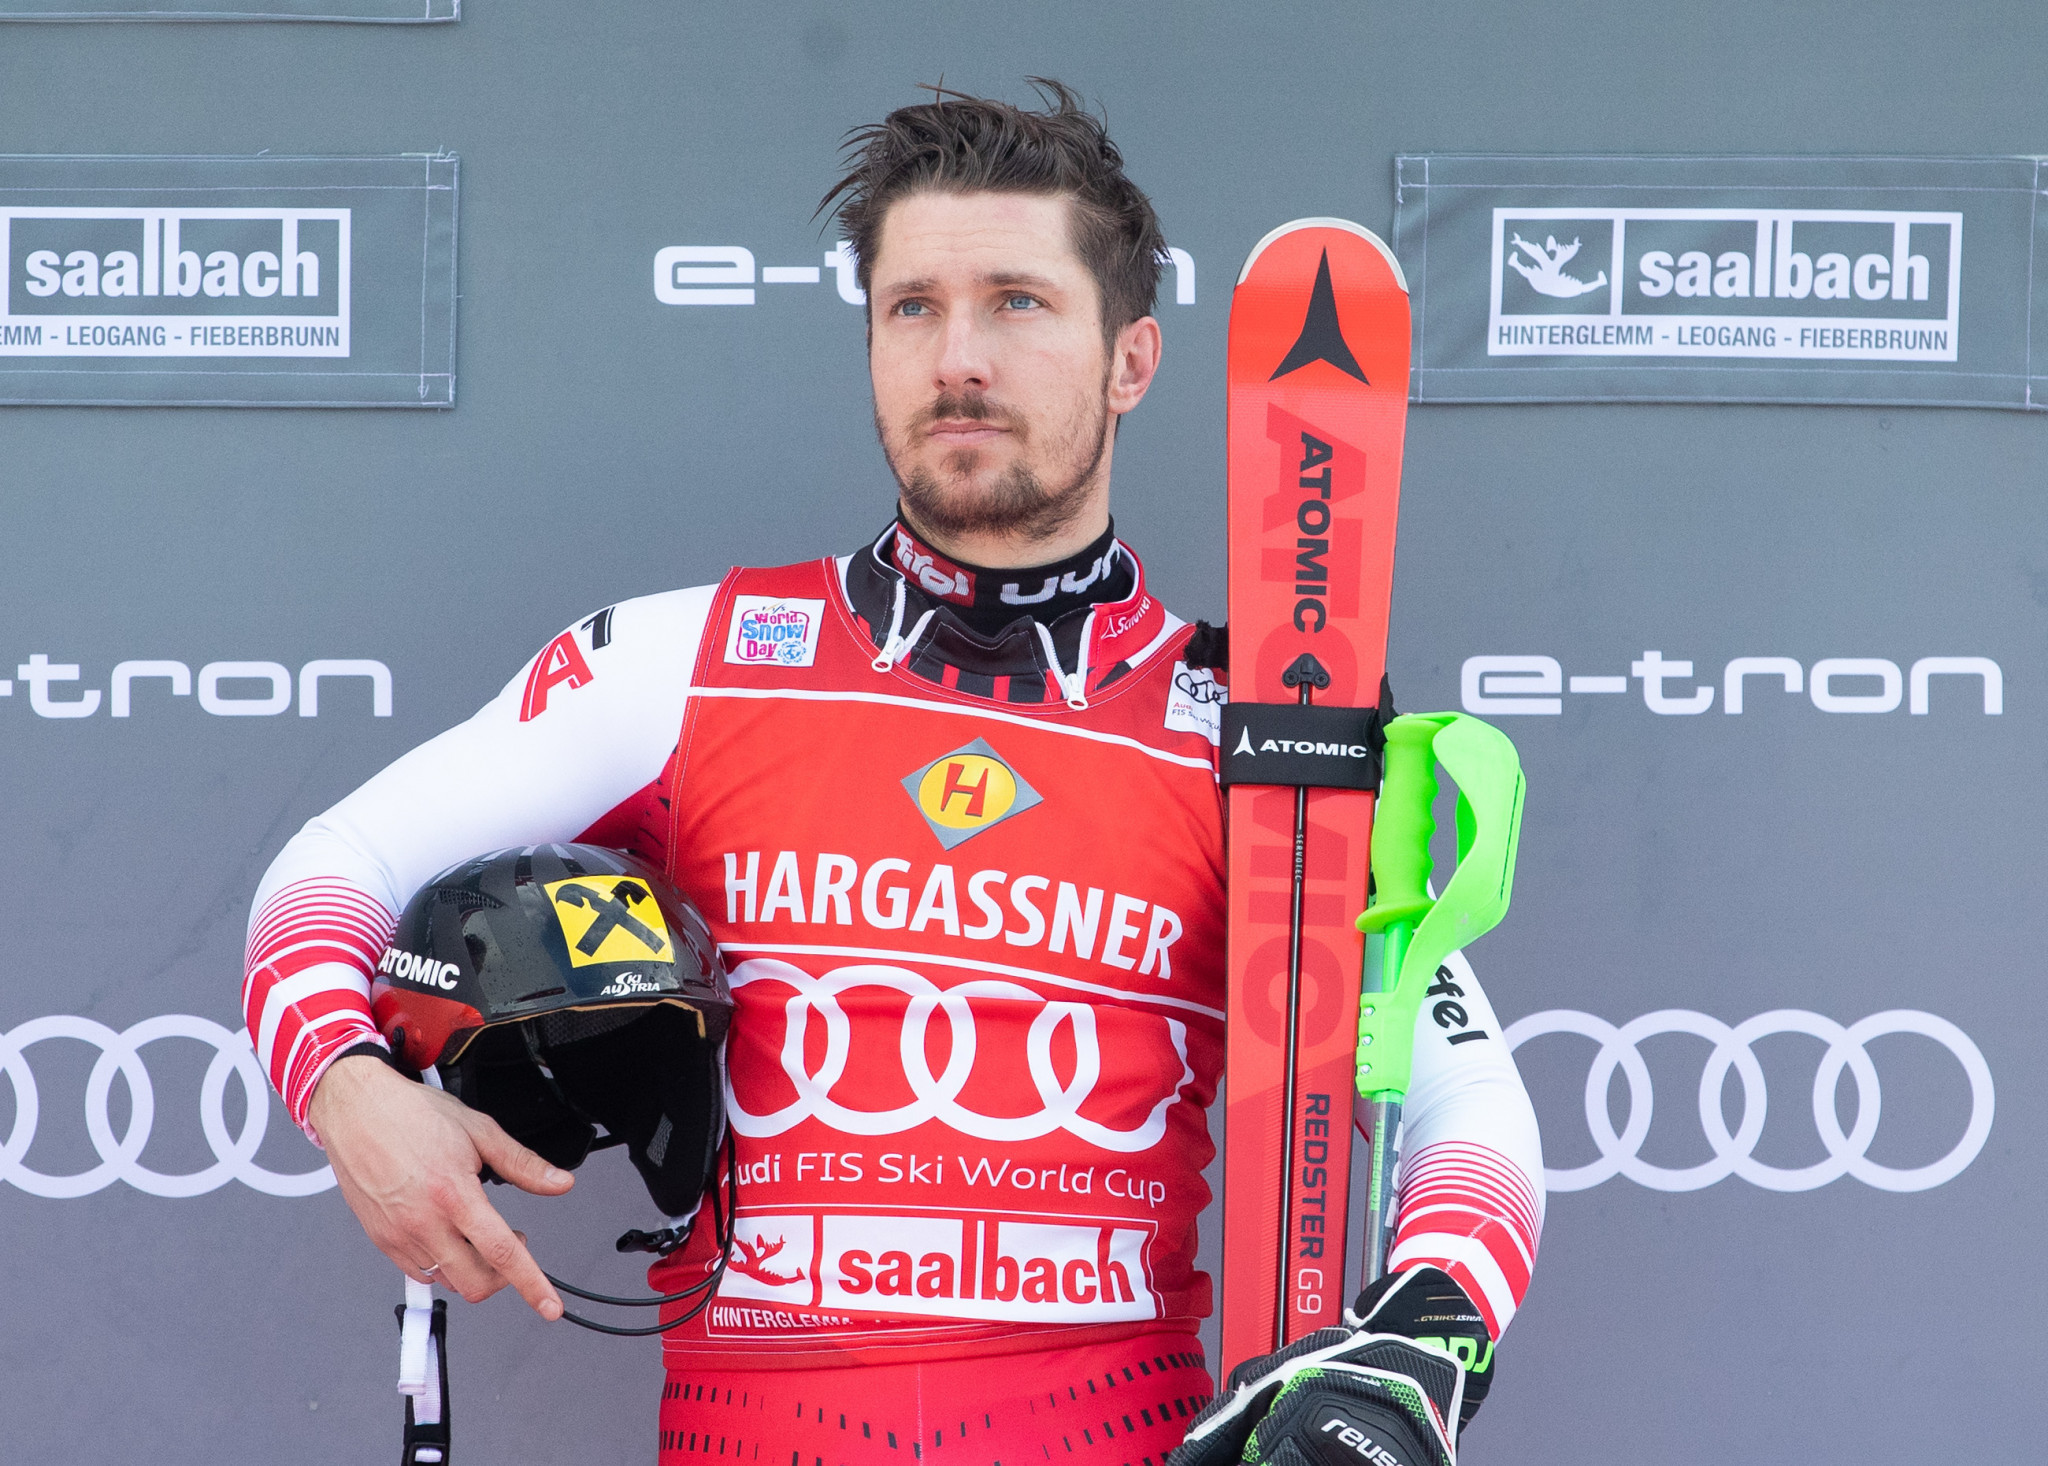 Marcel Hirscher is now the greatest Austrian skier of all time after winning his 63rd World Cup victory at the FIS Alpine Skiing World Cup in Saalbach-Hinterglemm ©Getty Images